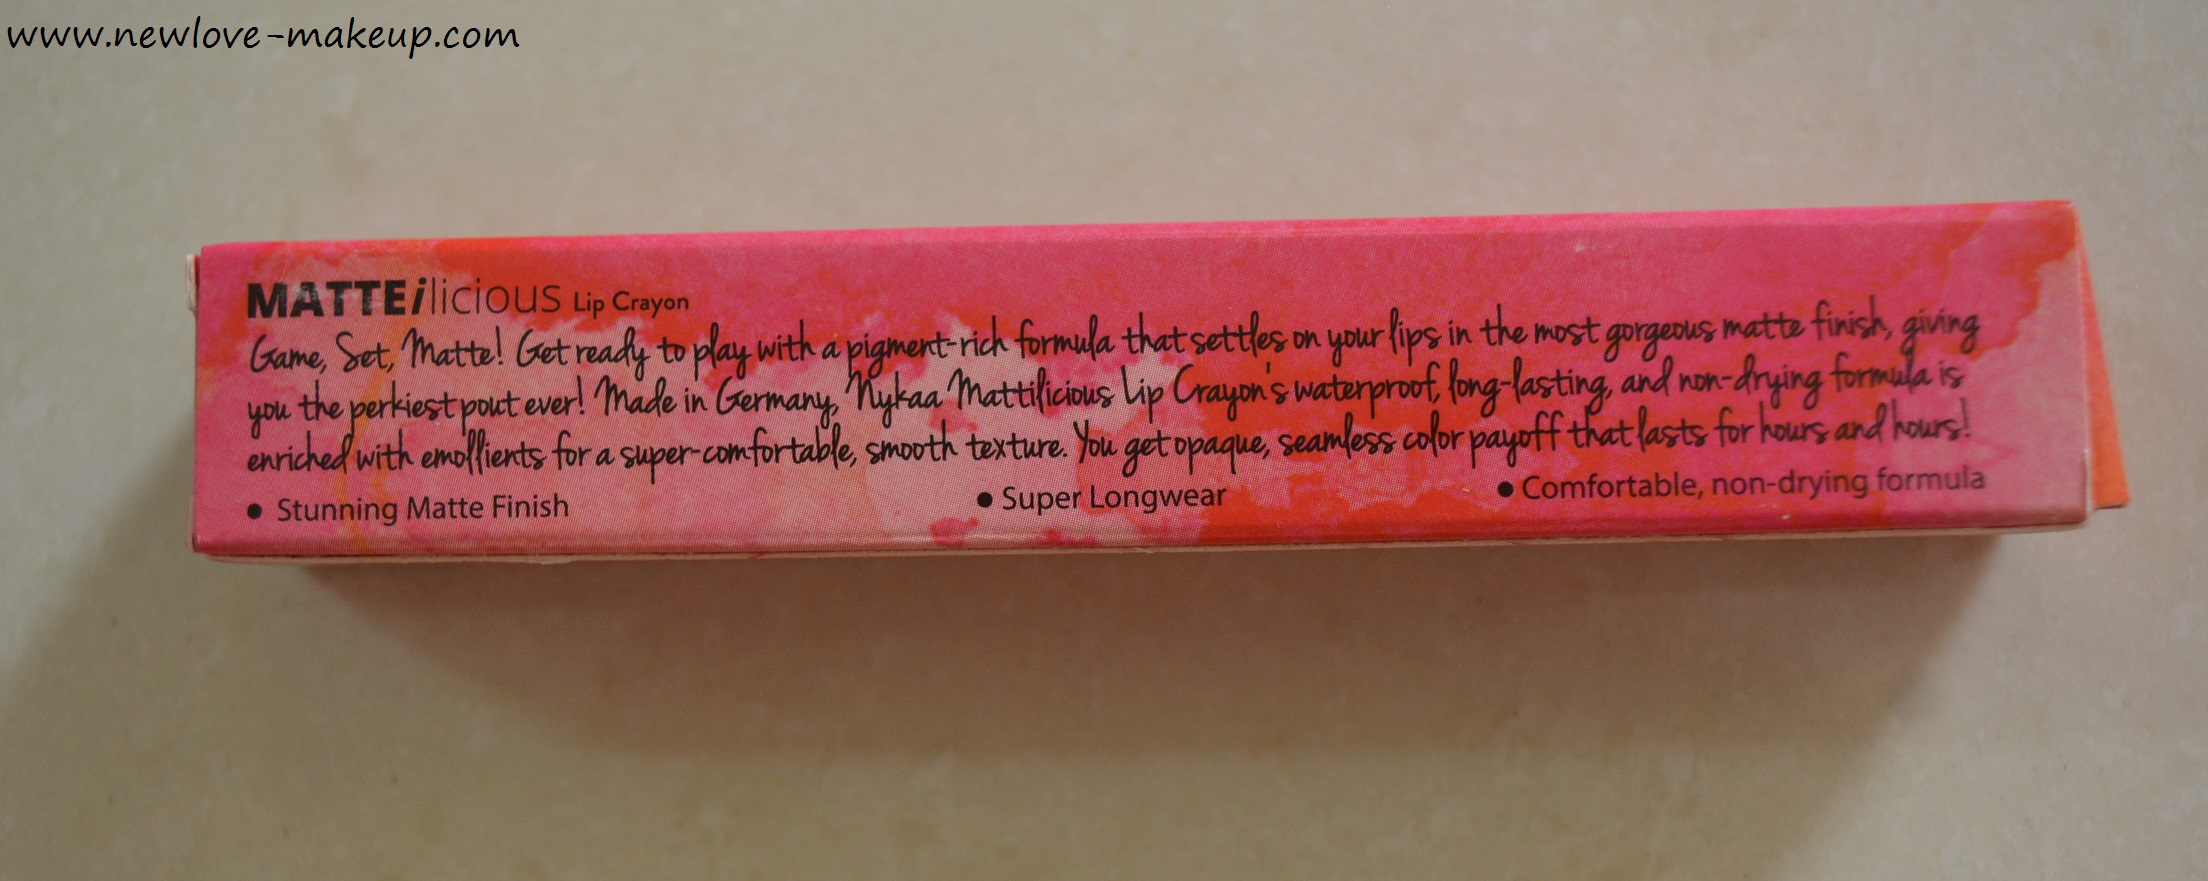 Nykaa Matteilicious Lip Crayons Review, Swatches